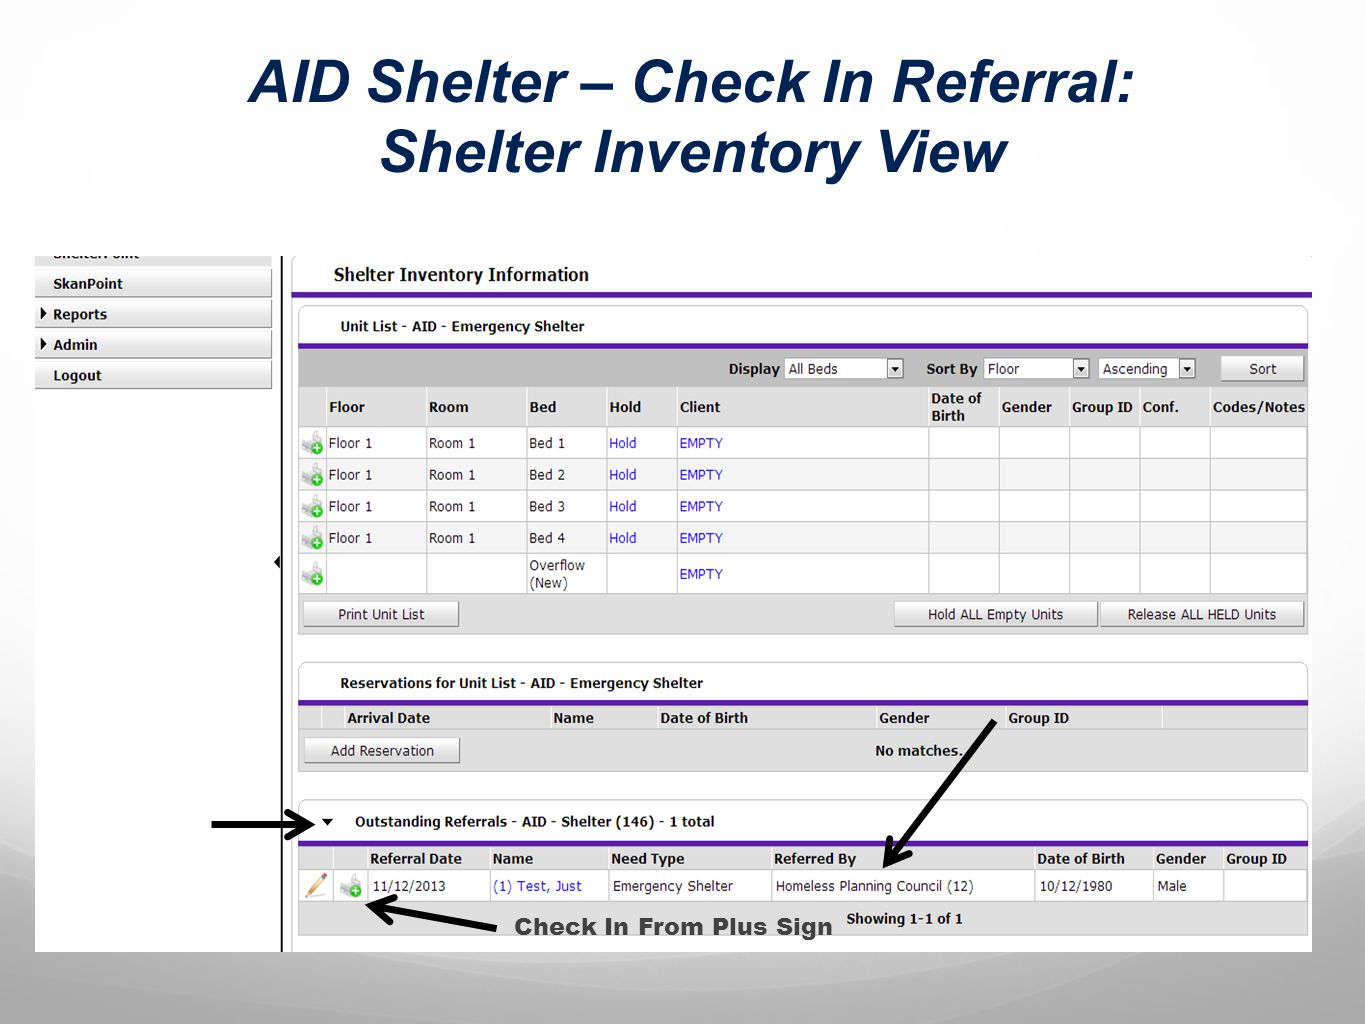 AID Shelter – Check In Referral: Shelter Inventory View